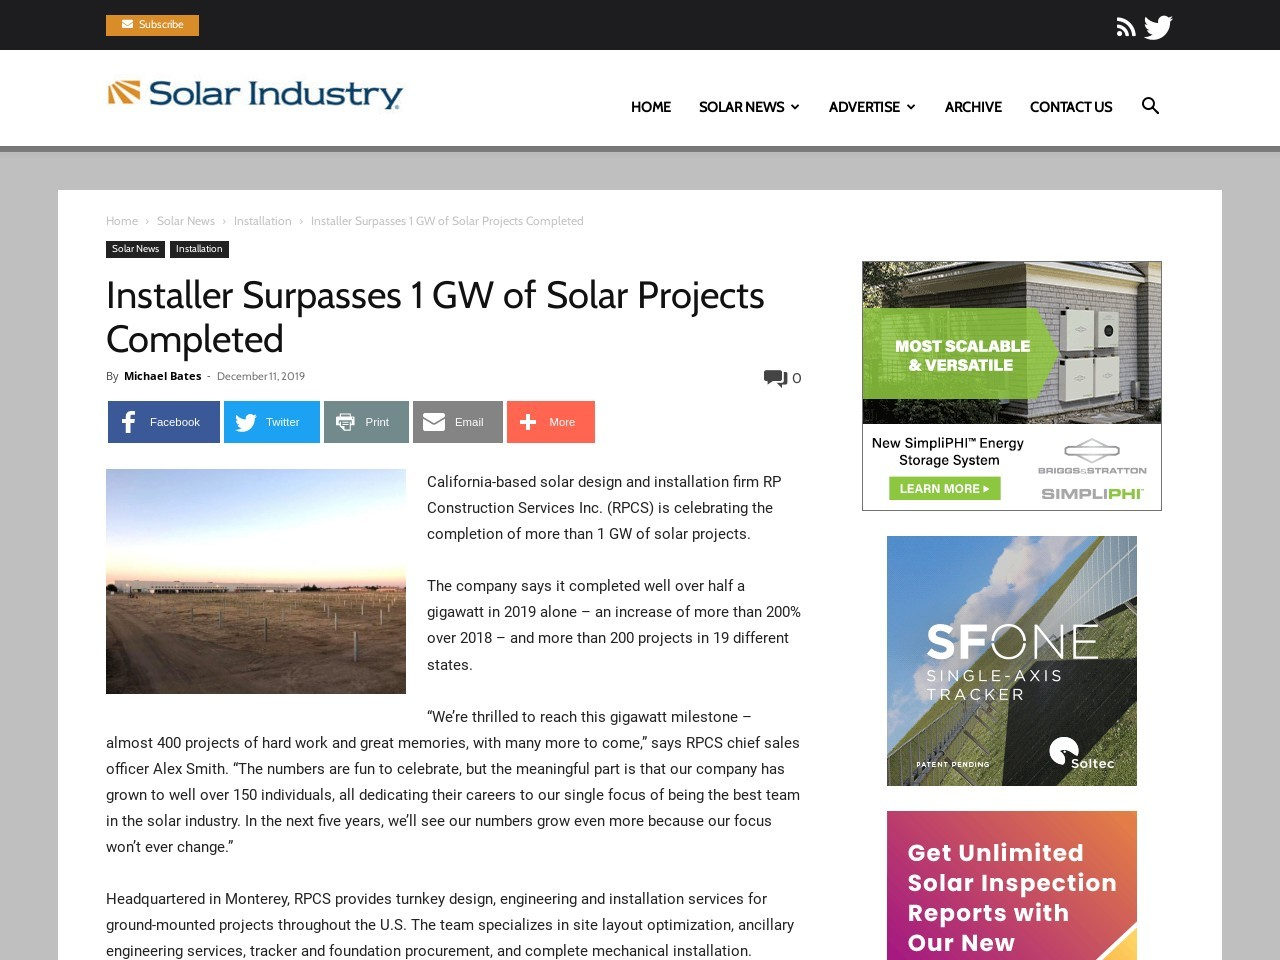 Installer Surpasses 1 GW of Solar Projects Completed